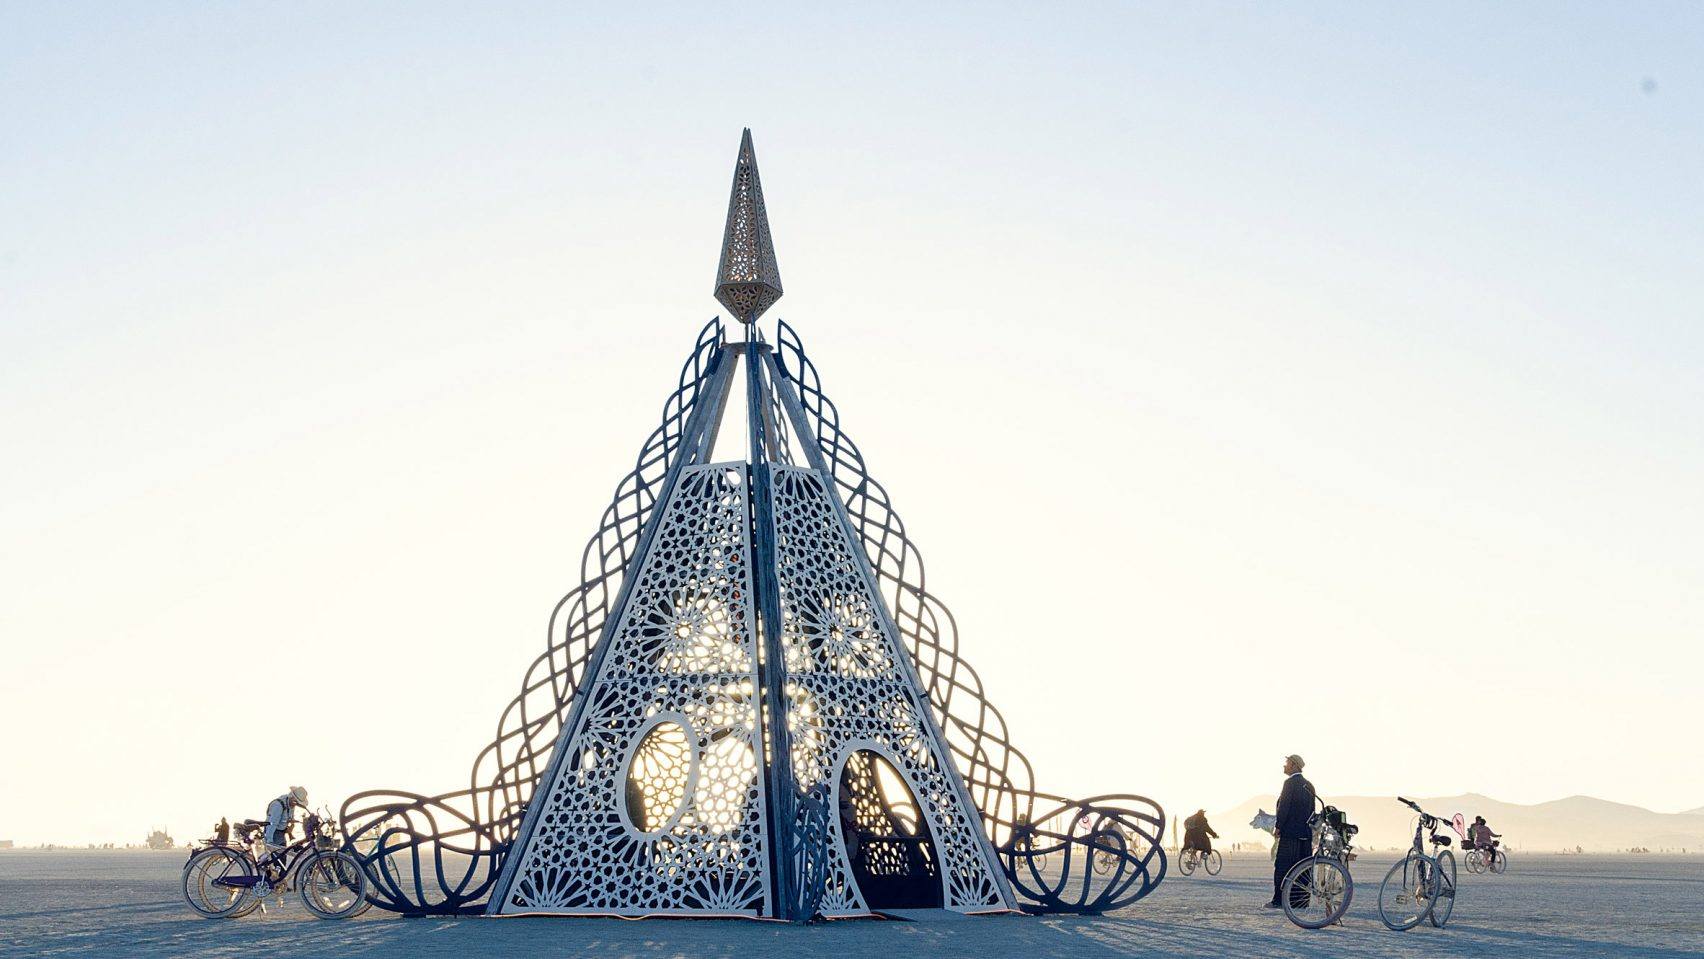 andromeda-reimagined-john-marx-burning-man_dezeen-hero-1704x959